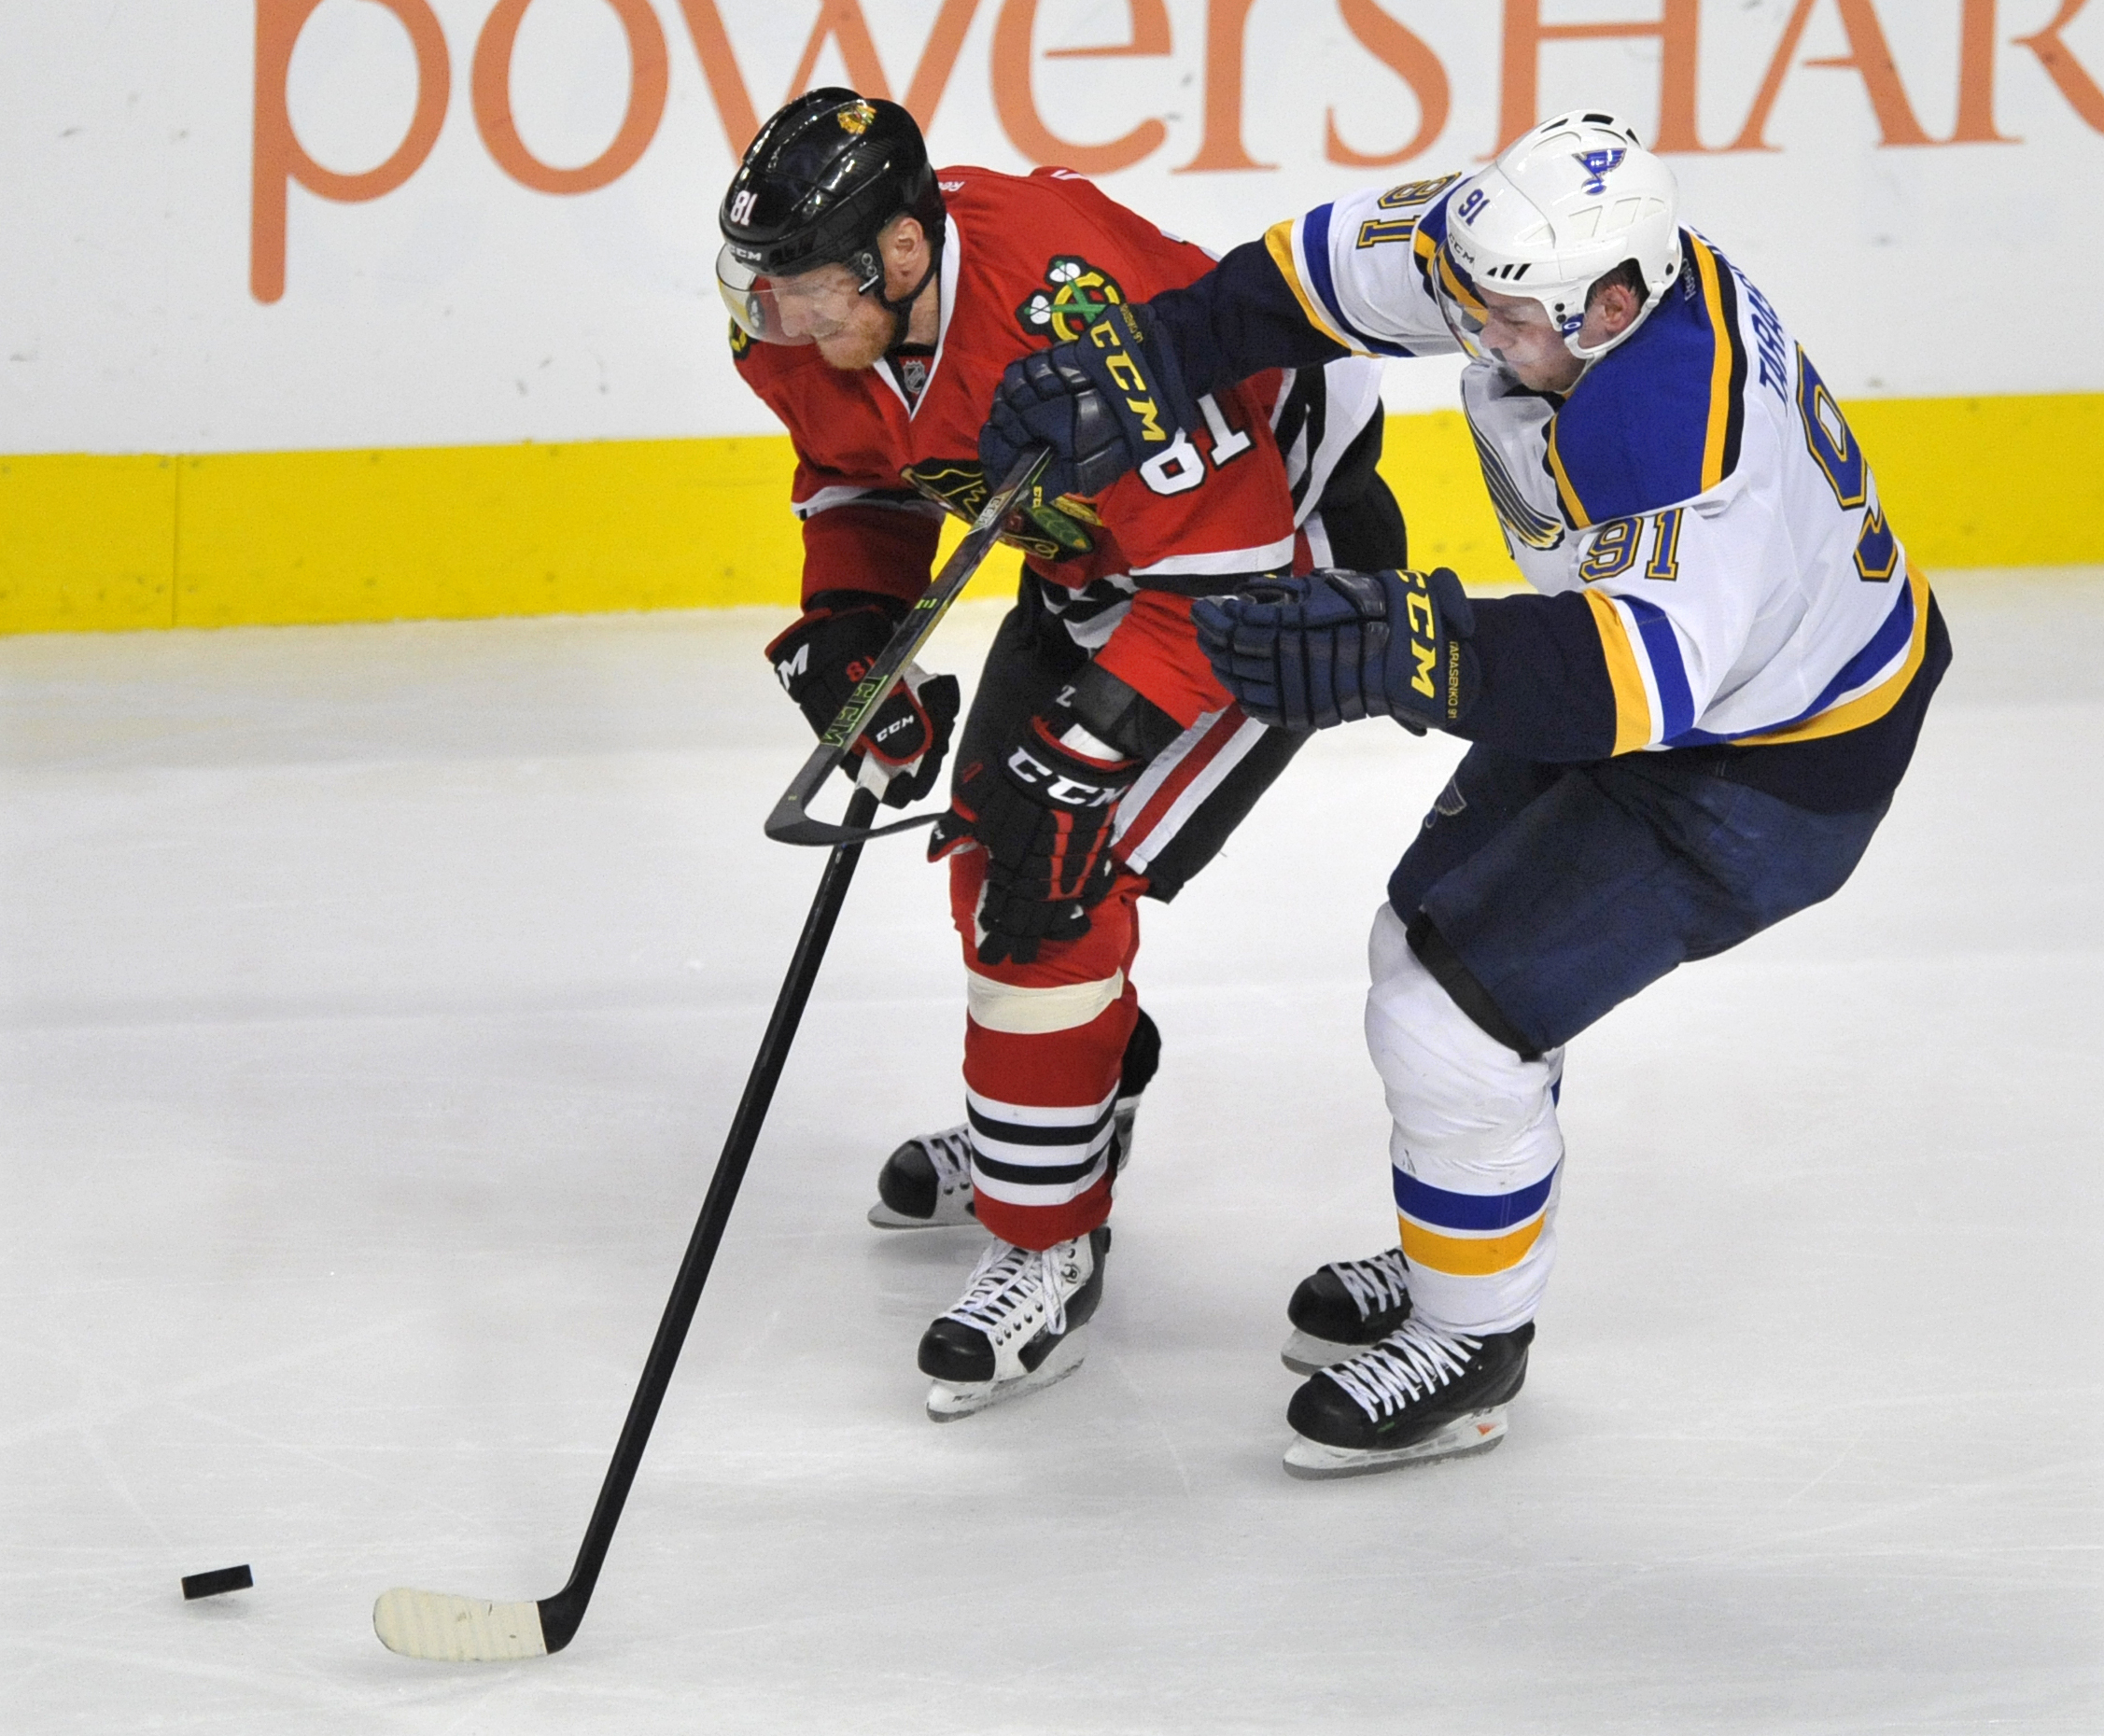 blues_blackhawks_hockey-43ac78a38cb04f99_r4163.jpeg